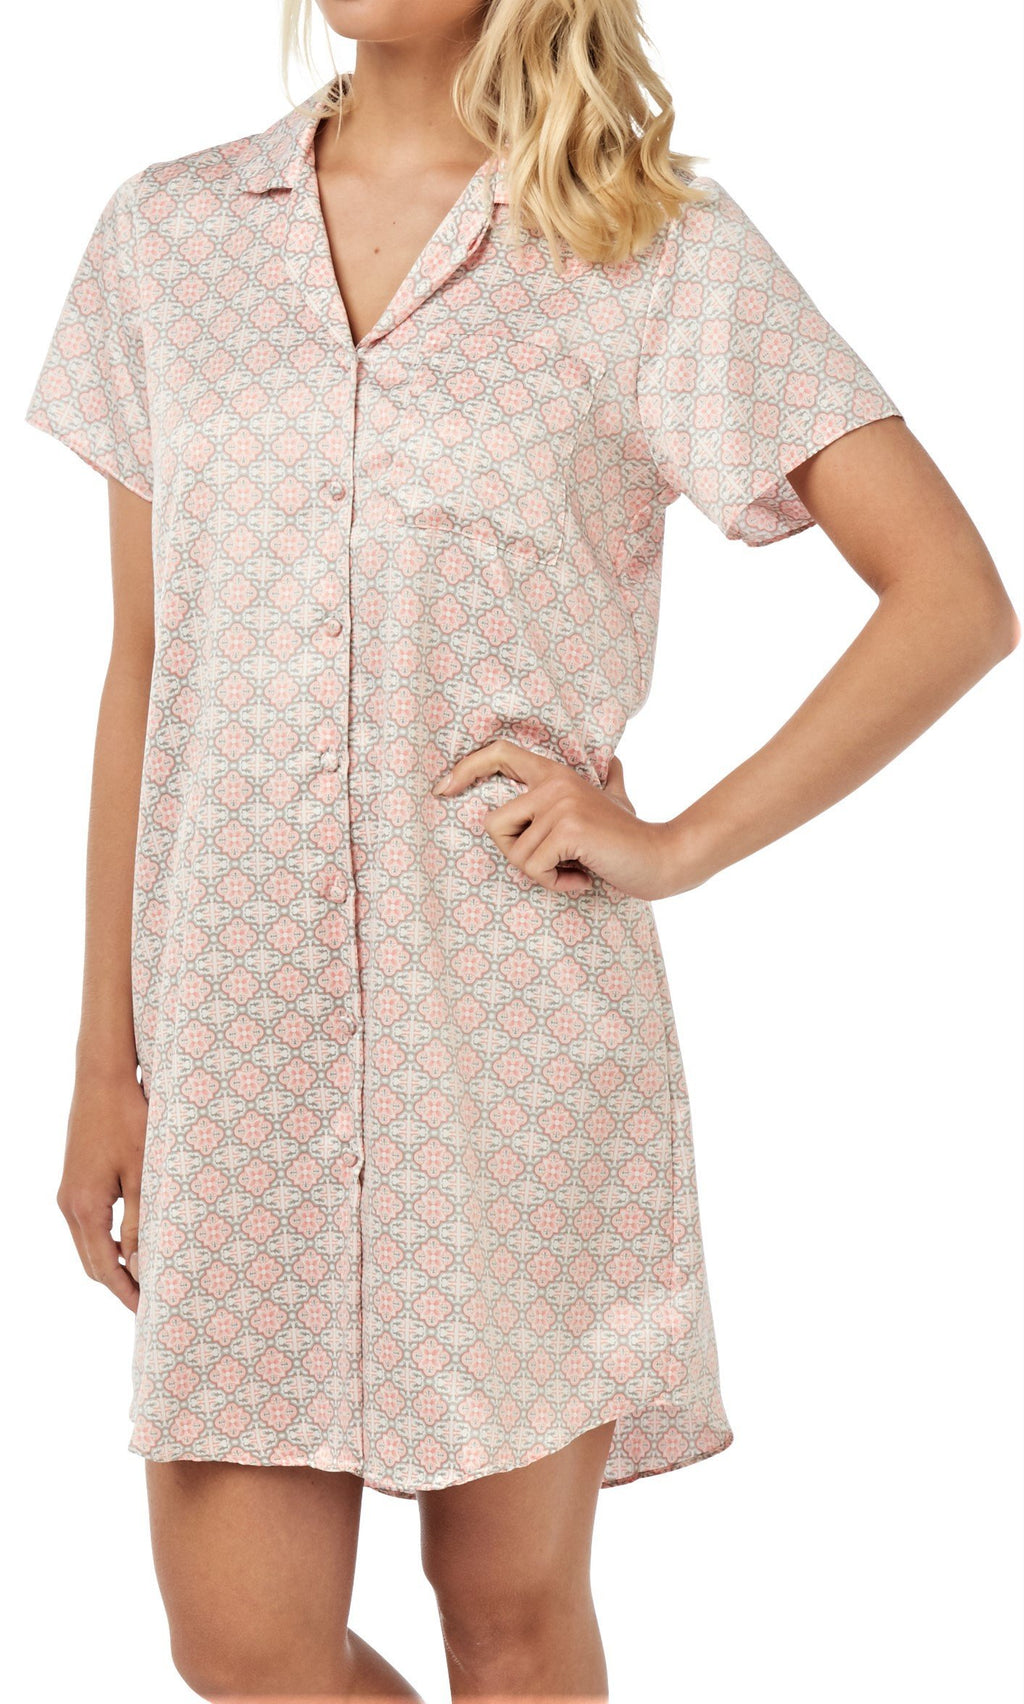 Women's Satin Nightshirt Button Down Sleepwear